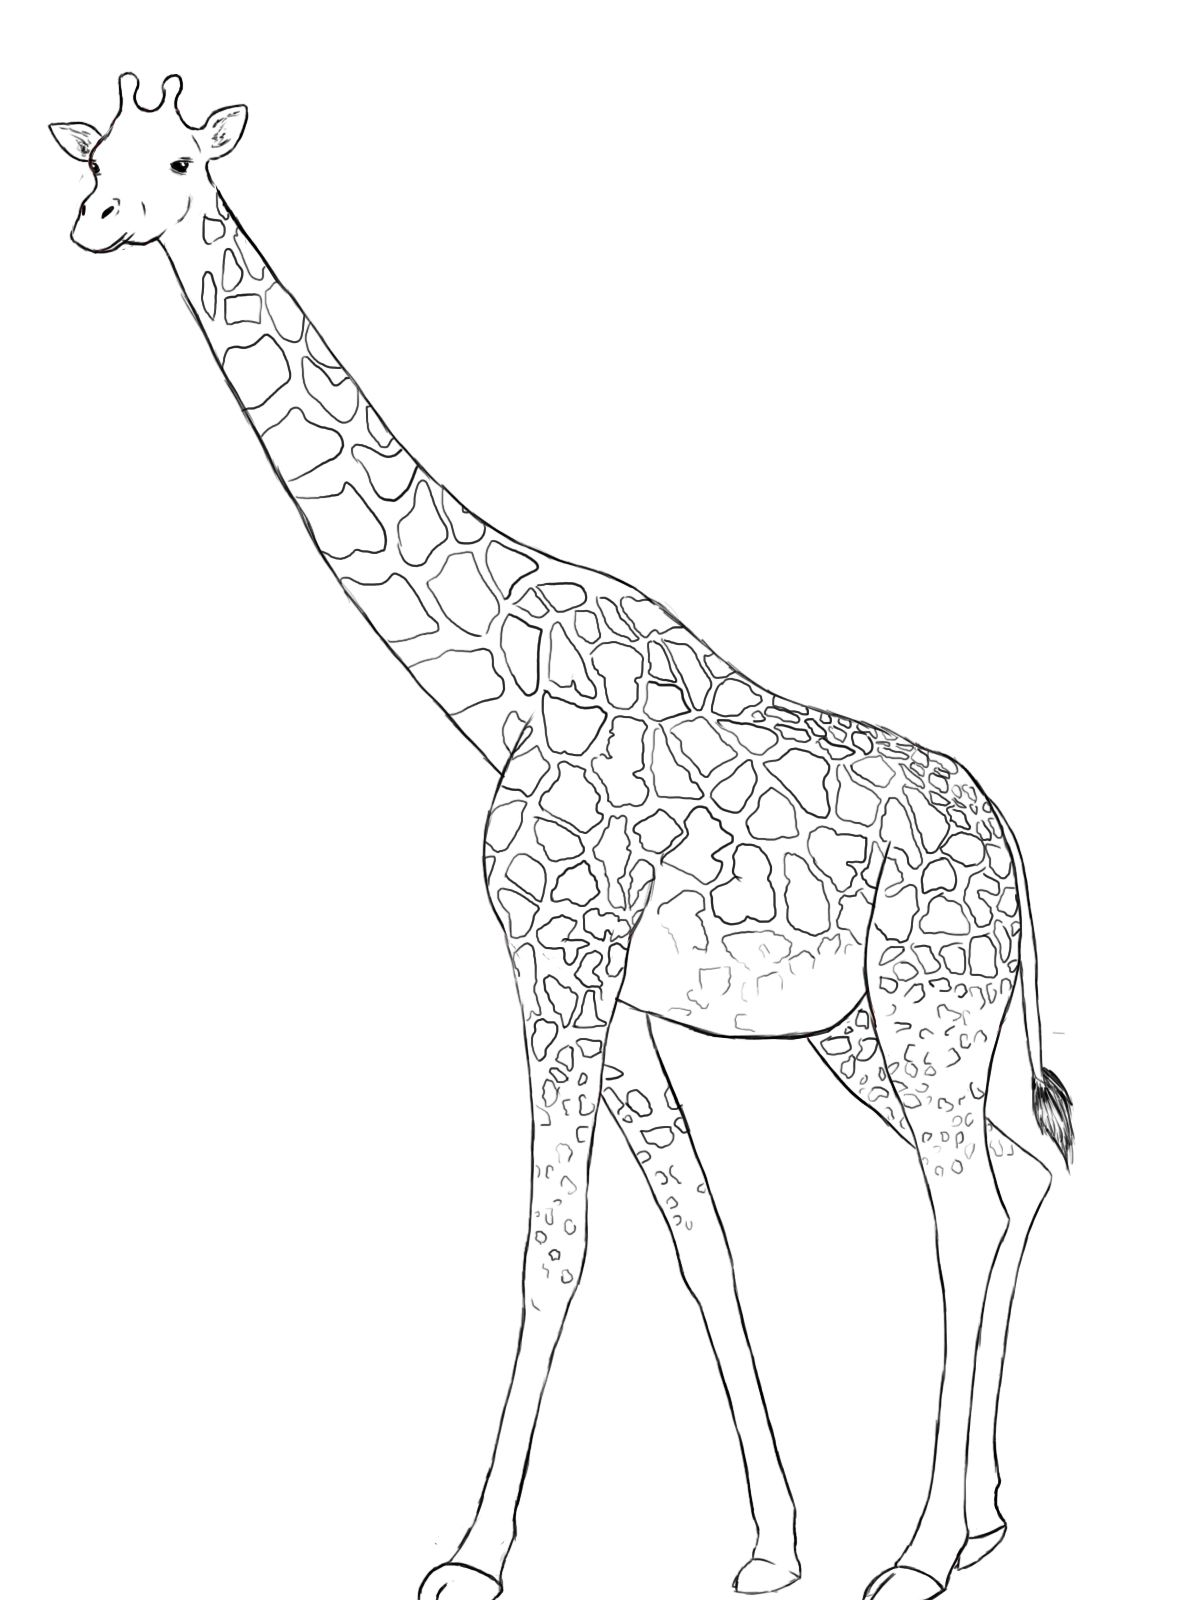 how to draw a giraffe step by step easy hippo outline drawing at getdrawings free download by easy step a how step to draw giraffe